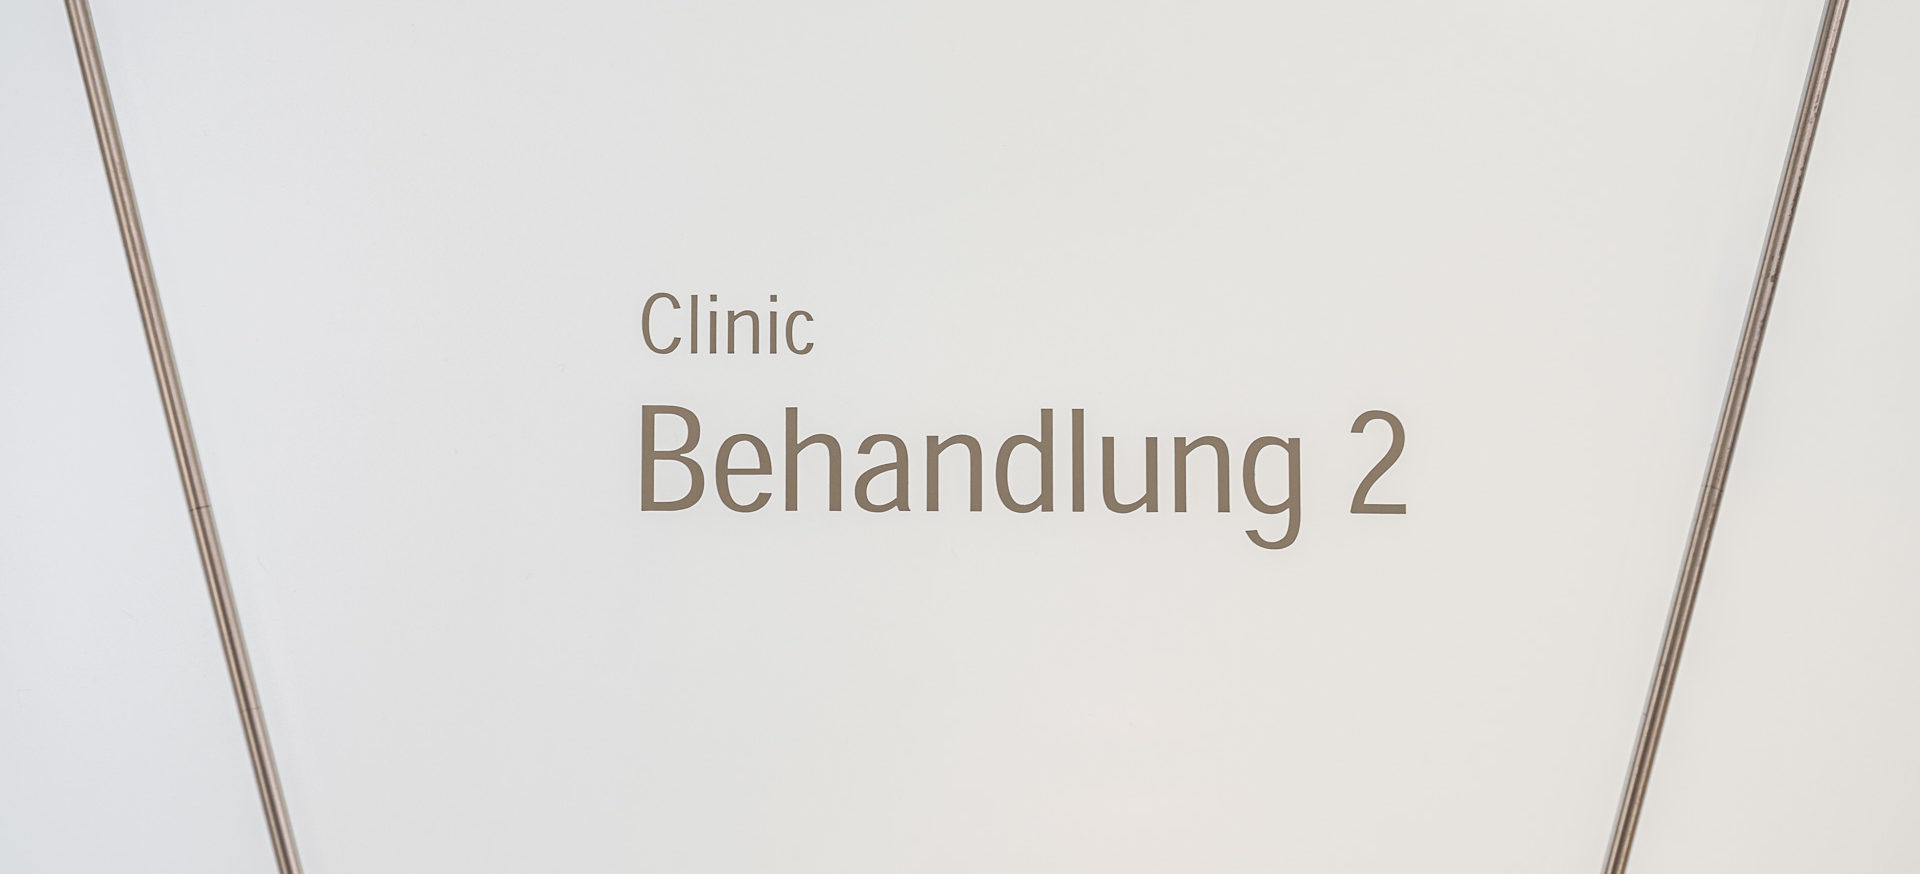 clinic-im-centrum-kontakt